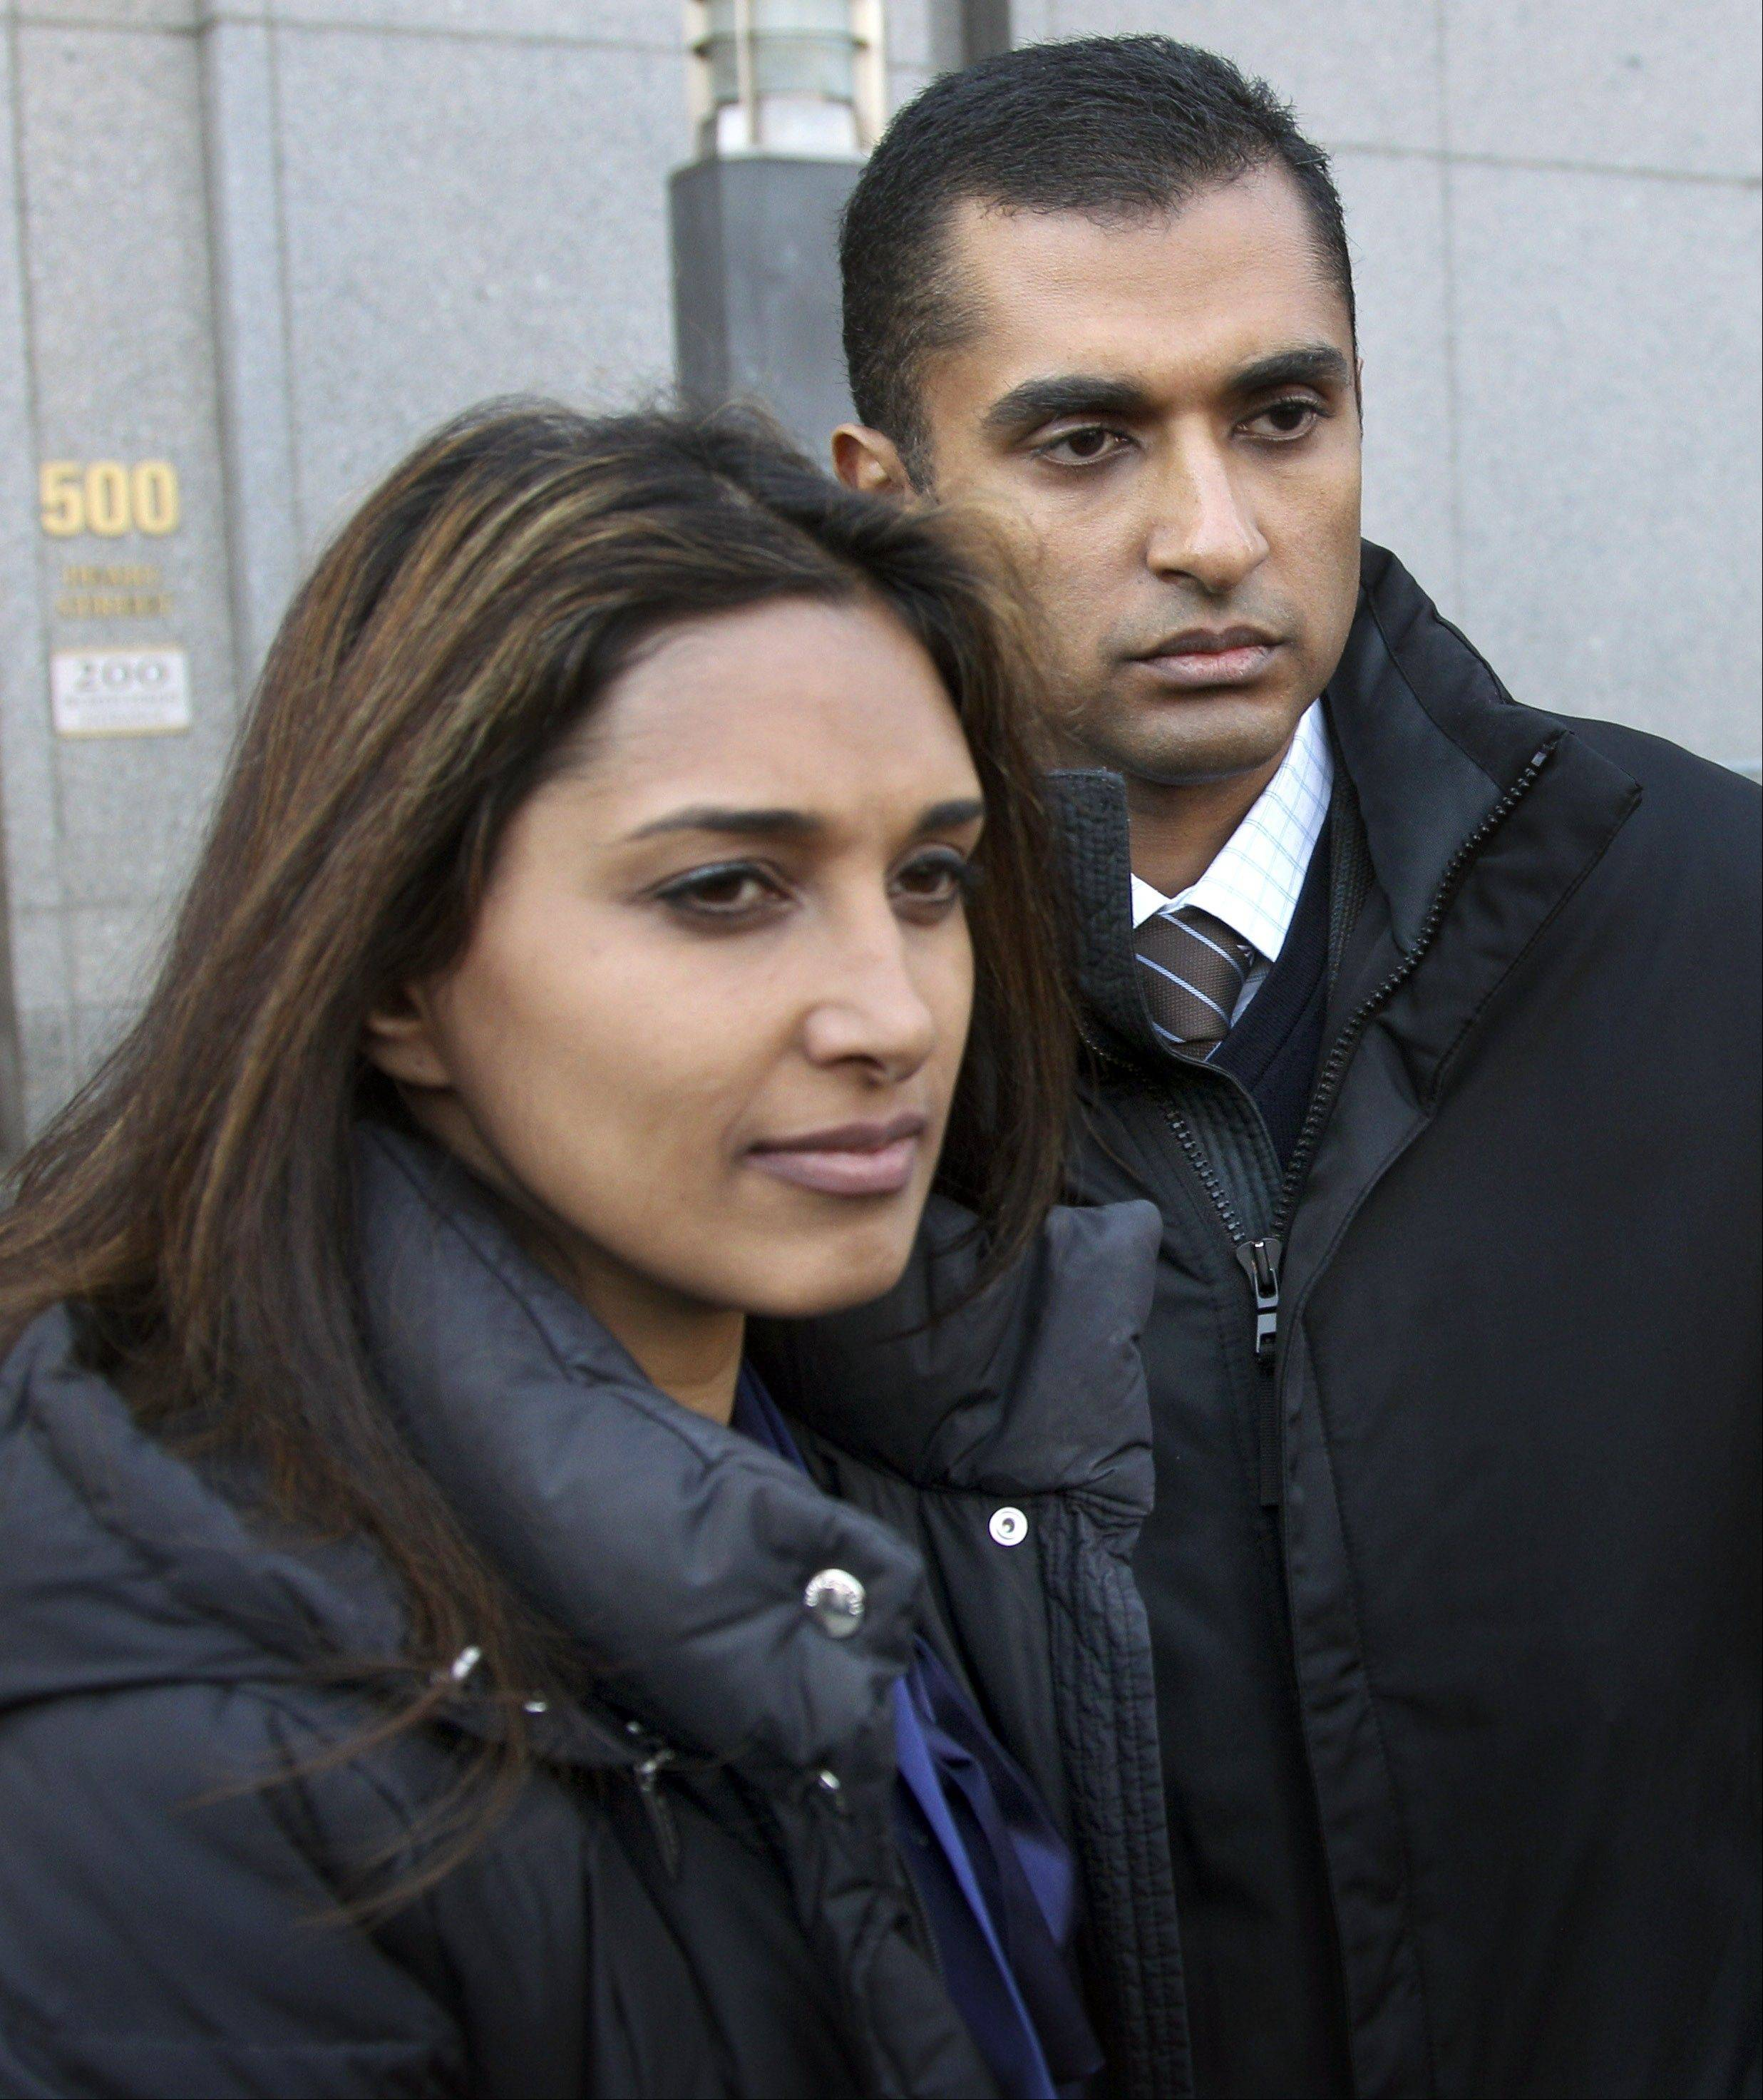 Mathew Martoma, right, leaves the federal courthouse with his wife, Rosemary, in New York Monday. Martoma, accused of enabling a quarter of a billion dollars in profits through inside information, appeared in a New York court Monday for the first time and was released on $5 million bail after his 12-minute appearance before a federal magistrate judge.